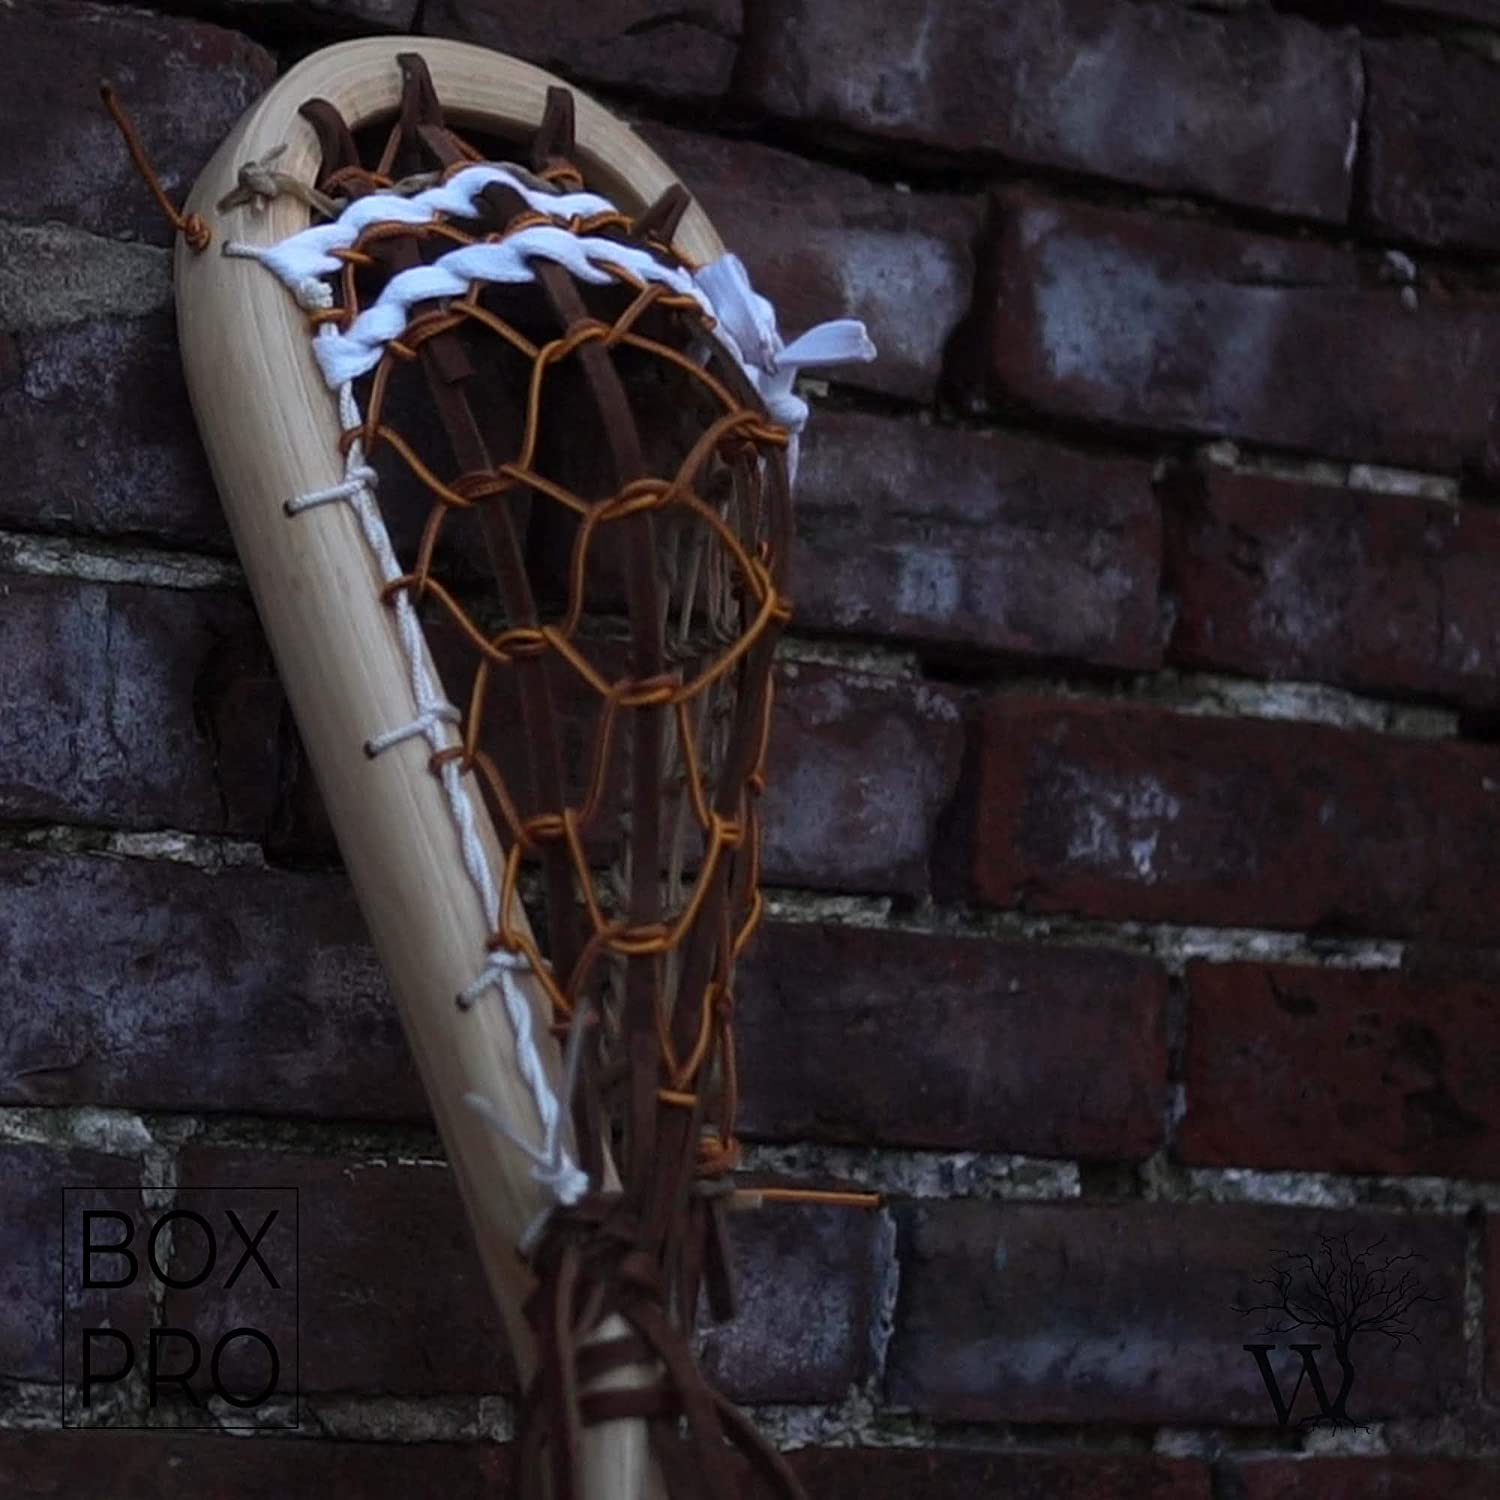 Wooden Lacrosse Stick Boot Lace BOX PRO by Justin Skaggs